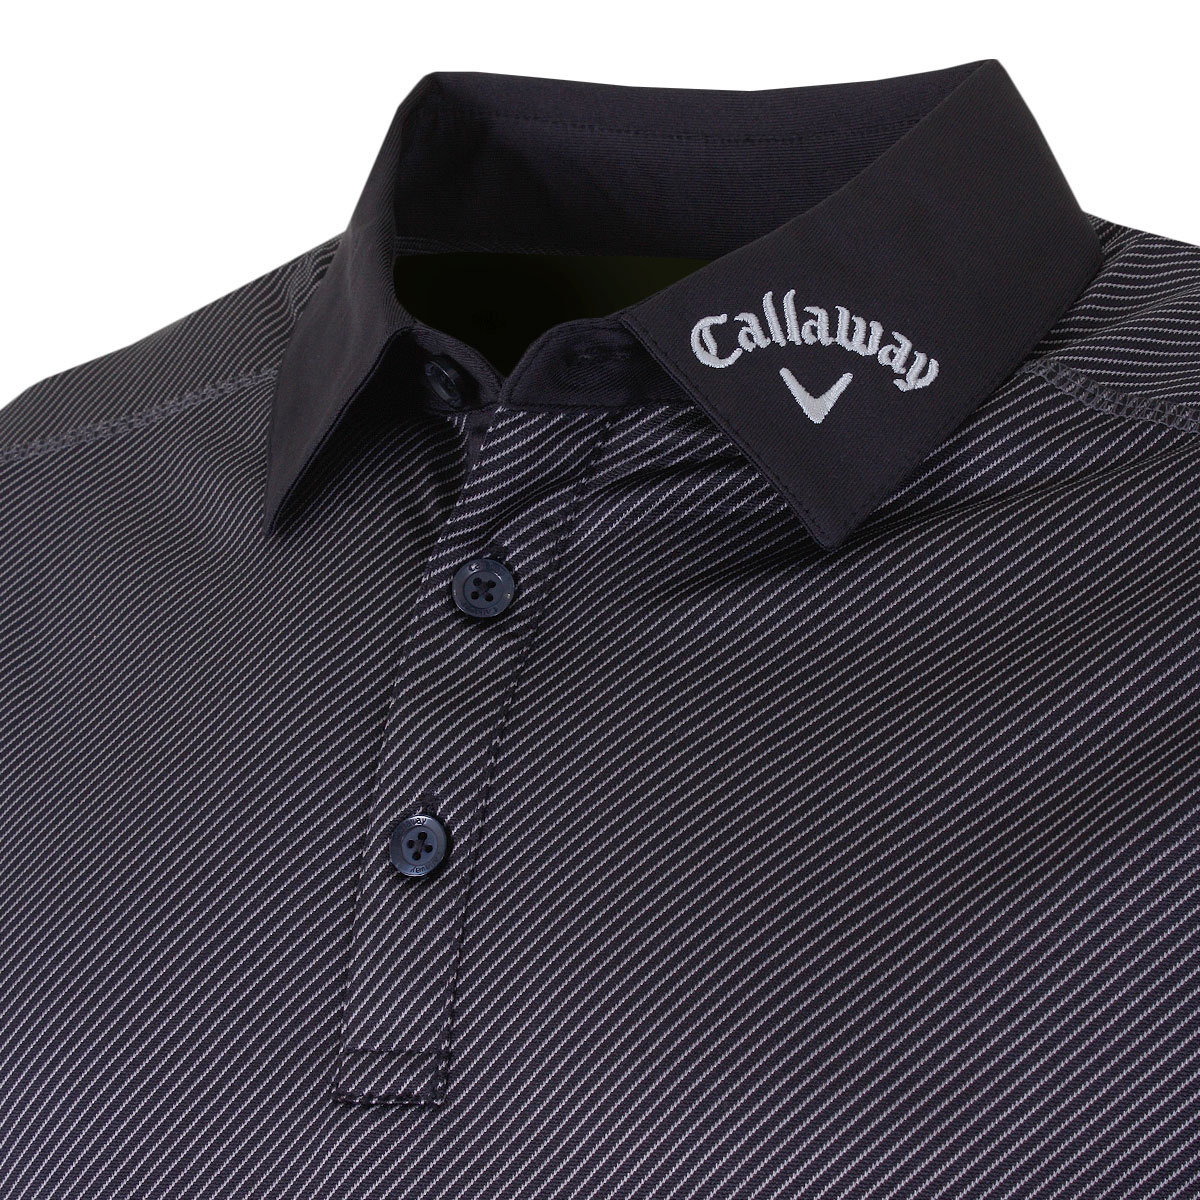 Callaway-Golf-Mens-Denim-Jacquard-Dri-Fit-Performance-Polo-Shirt-37-OFF-RRP thumbnail 4